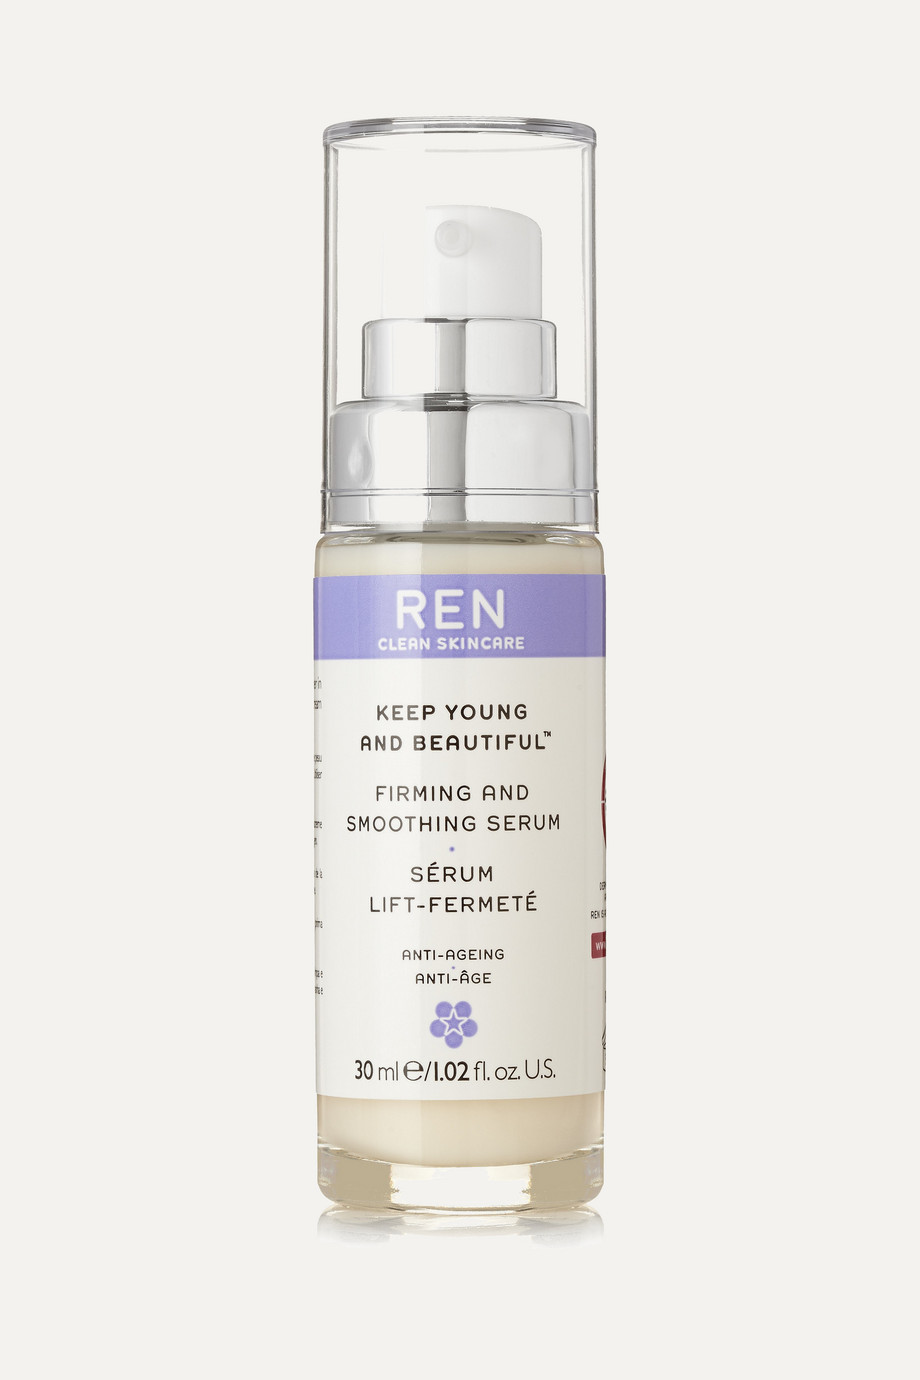 Keep Young and Beautiful Firming and Smoothing Serum, 30ml, by Ren Skincare